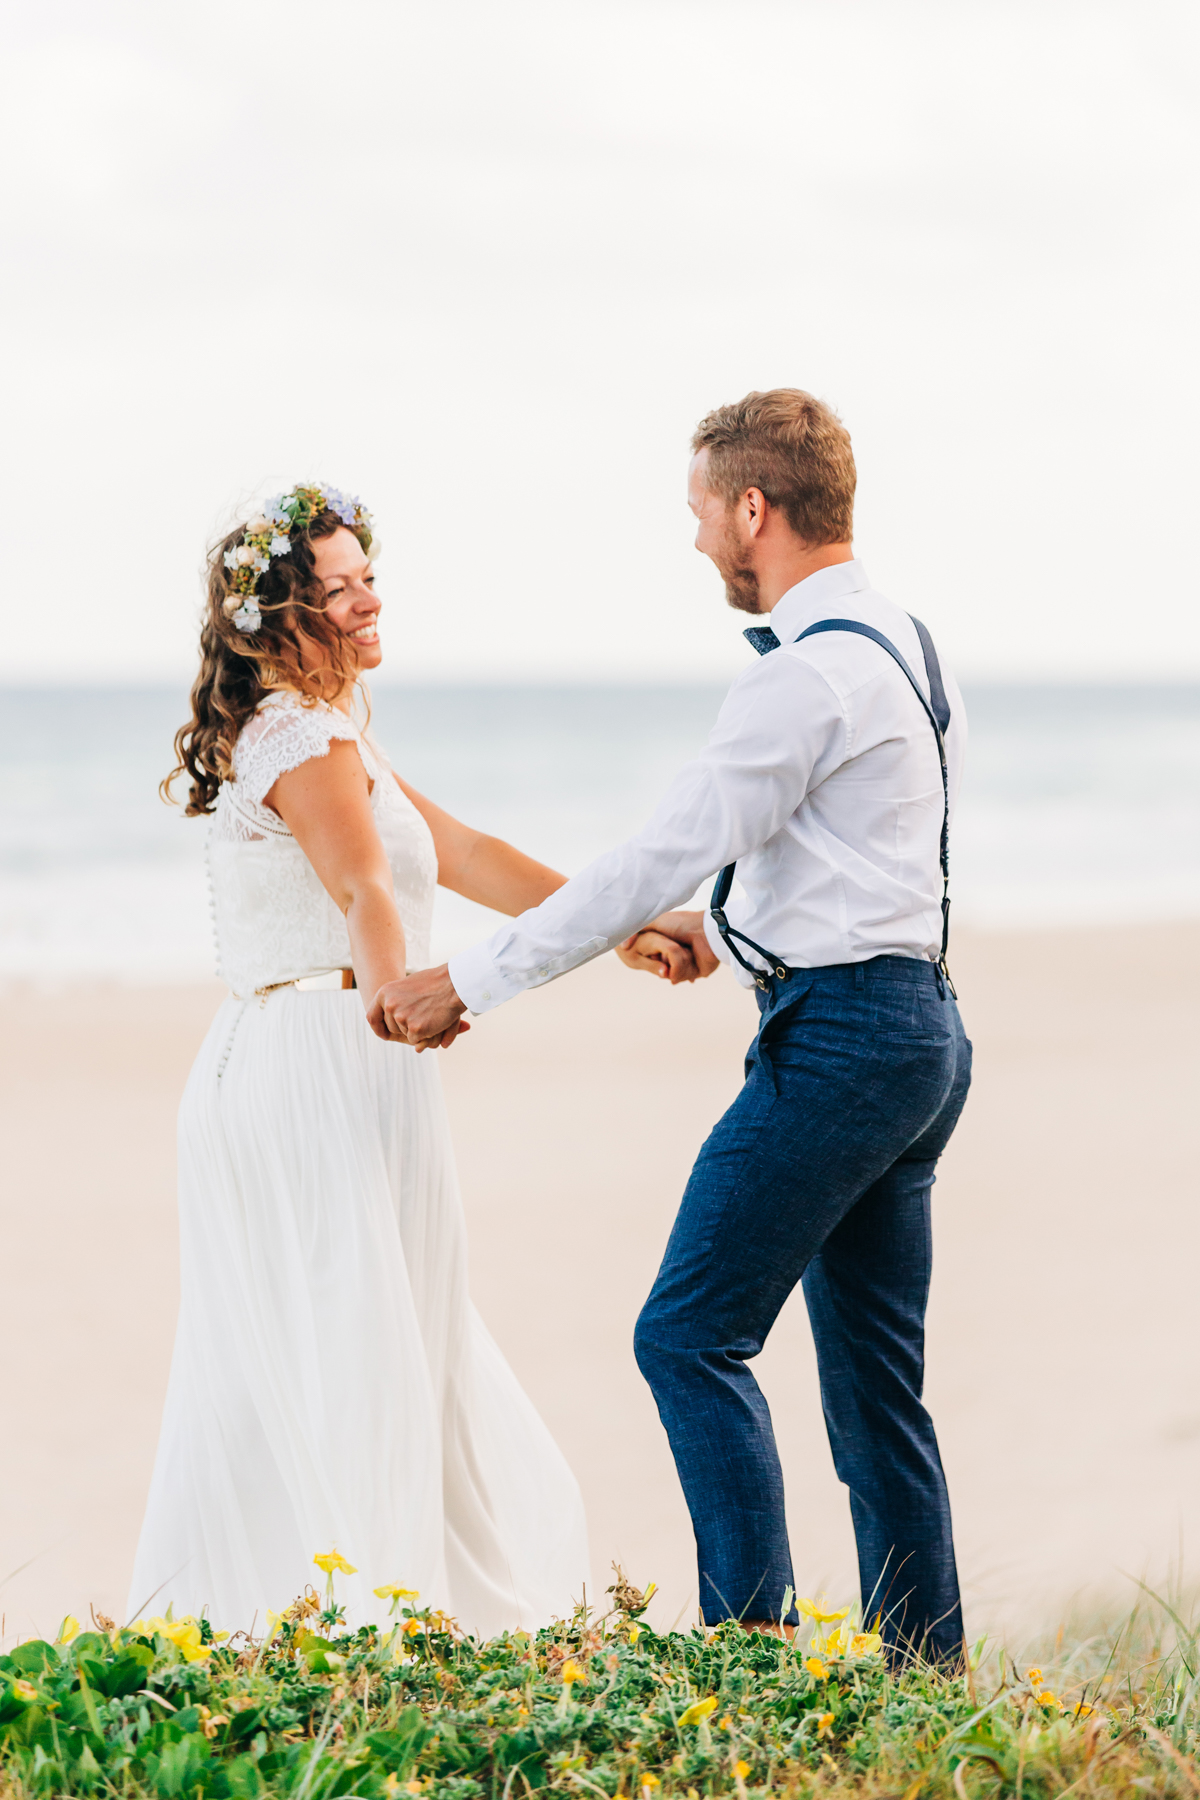 Sunshine-Beach-Wedding-Photographers-Lindy-Yewen 113.jpg